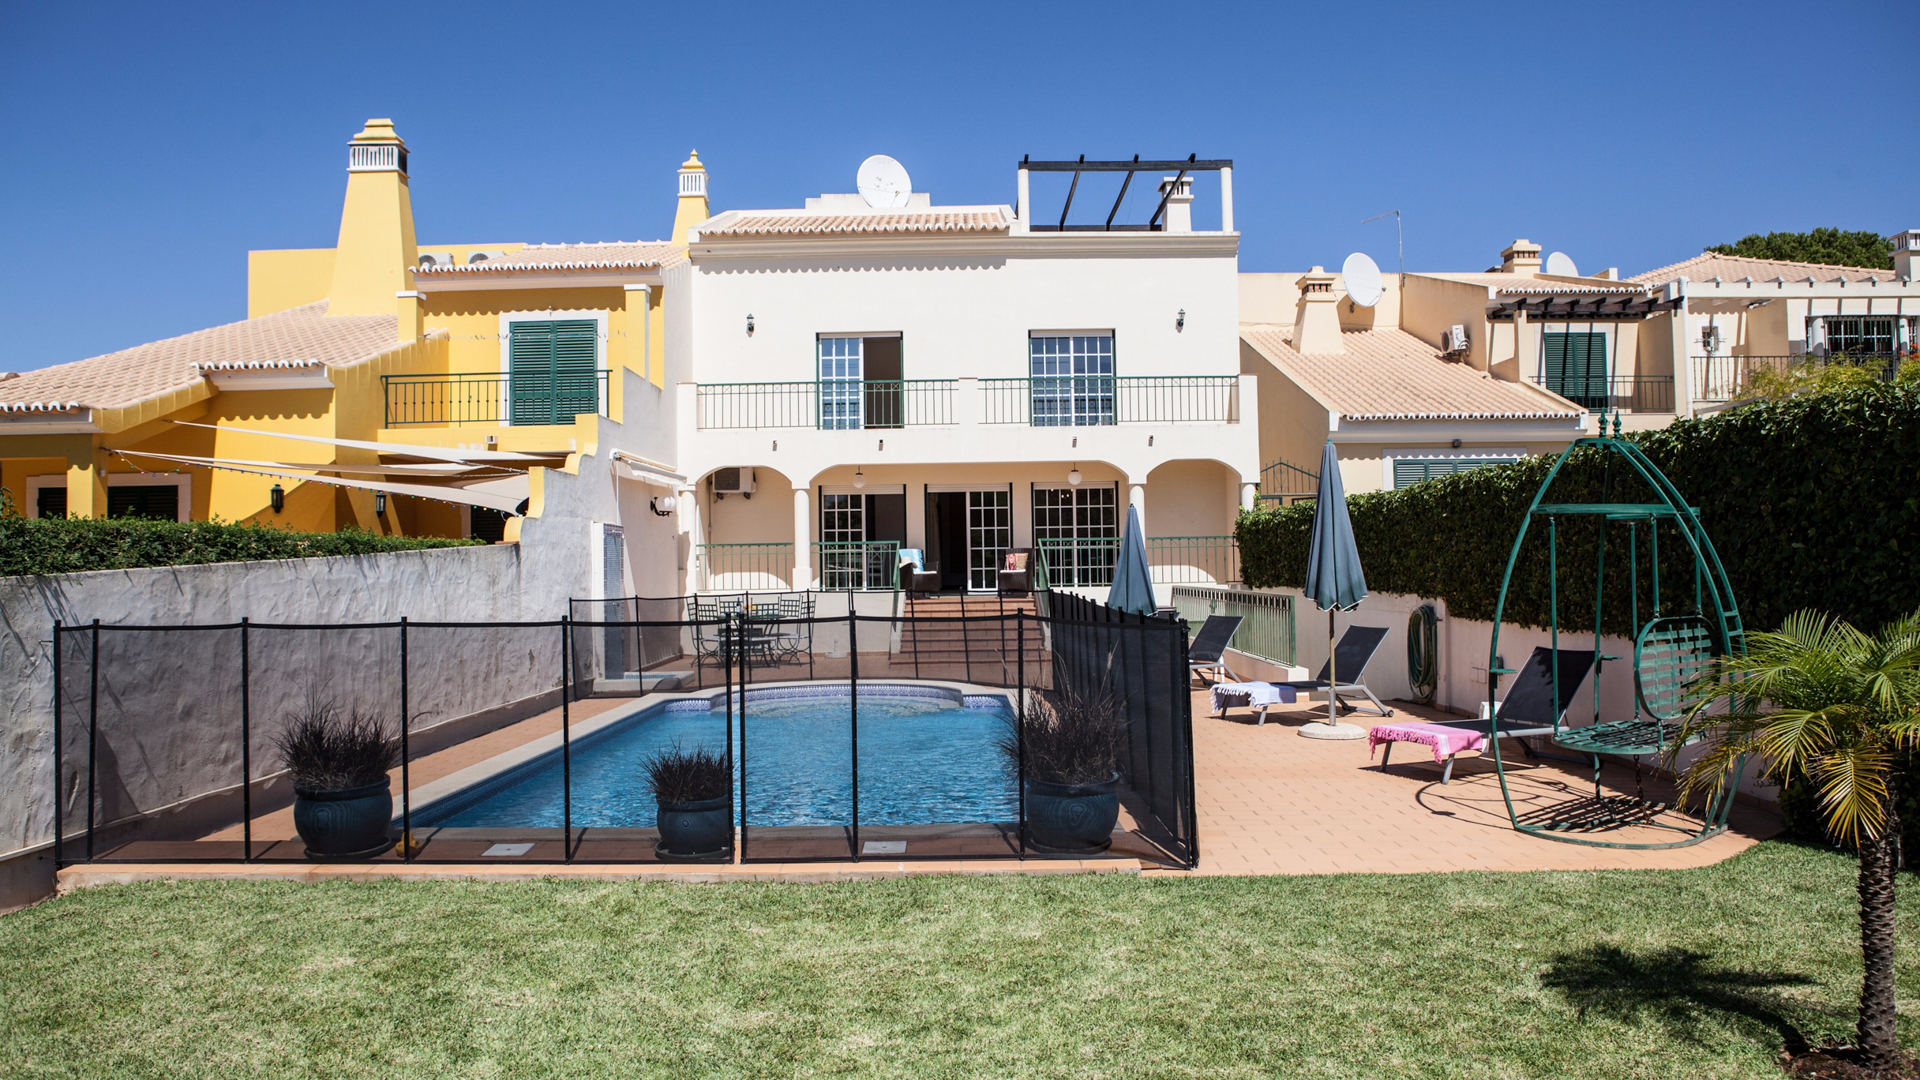 3 Bedroom Townhouse with Private Pool, near Golf Courses and Marina, Vilamoura | PRB023 This 3 bedroom townhouse is located in Vilamoura, close to golf courses, amenities, marina and beaches. It has also a private pool and it's perfect for permanent living or holidays.